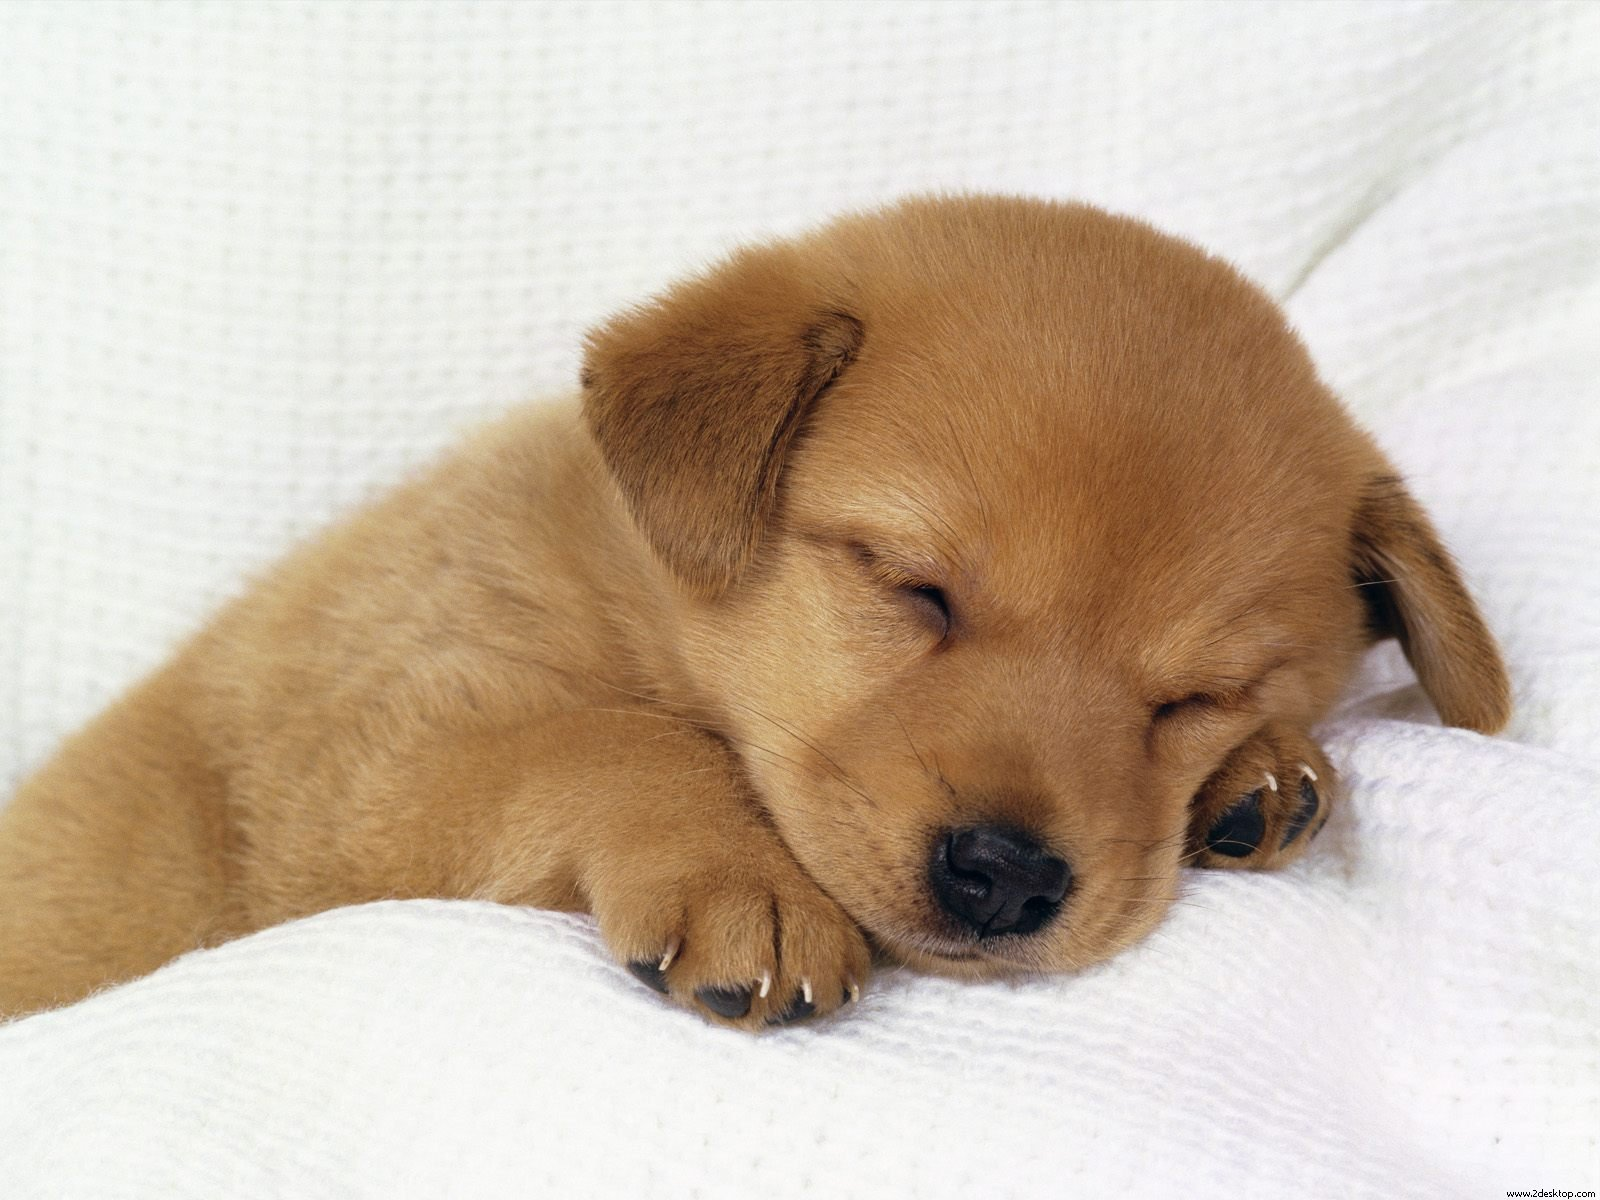 Pictures Of Puppies Sleeping